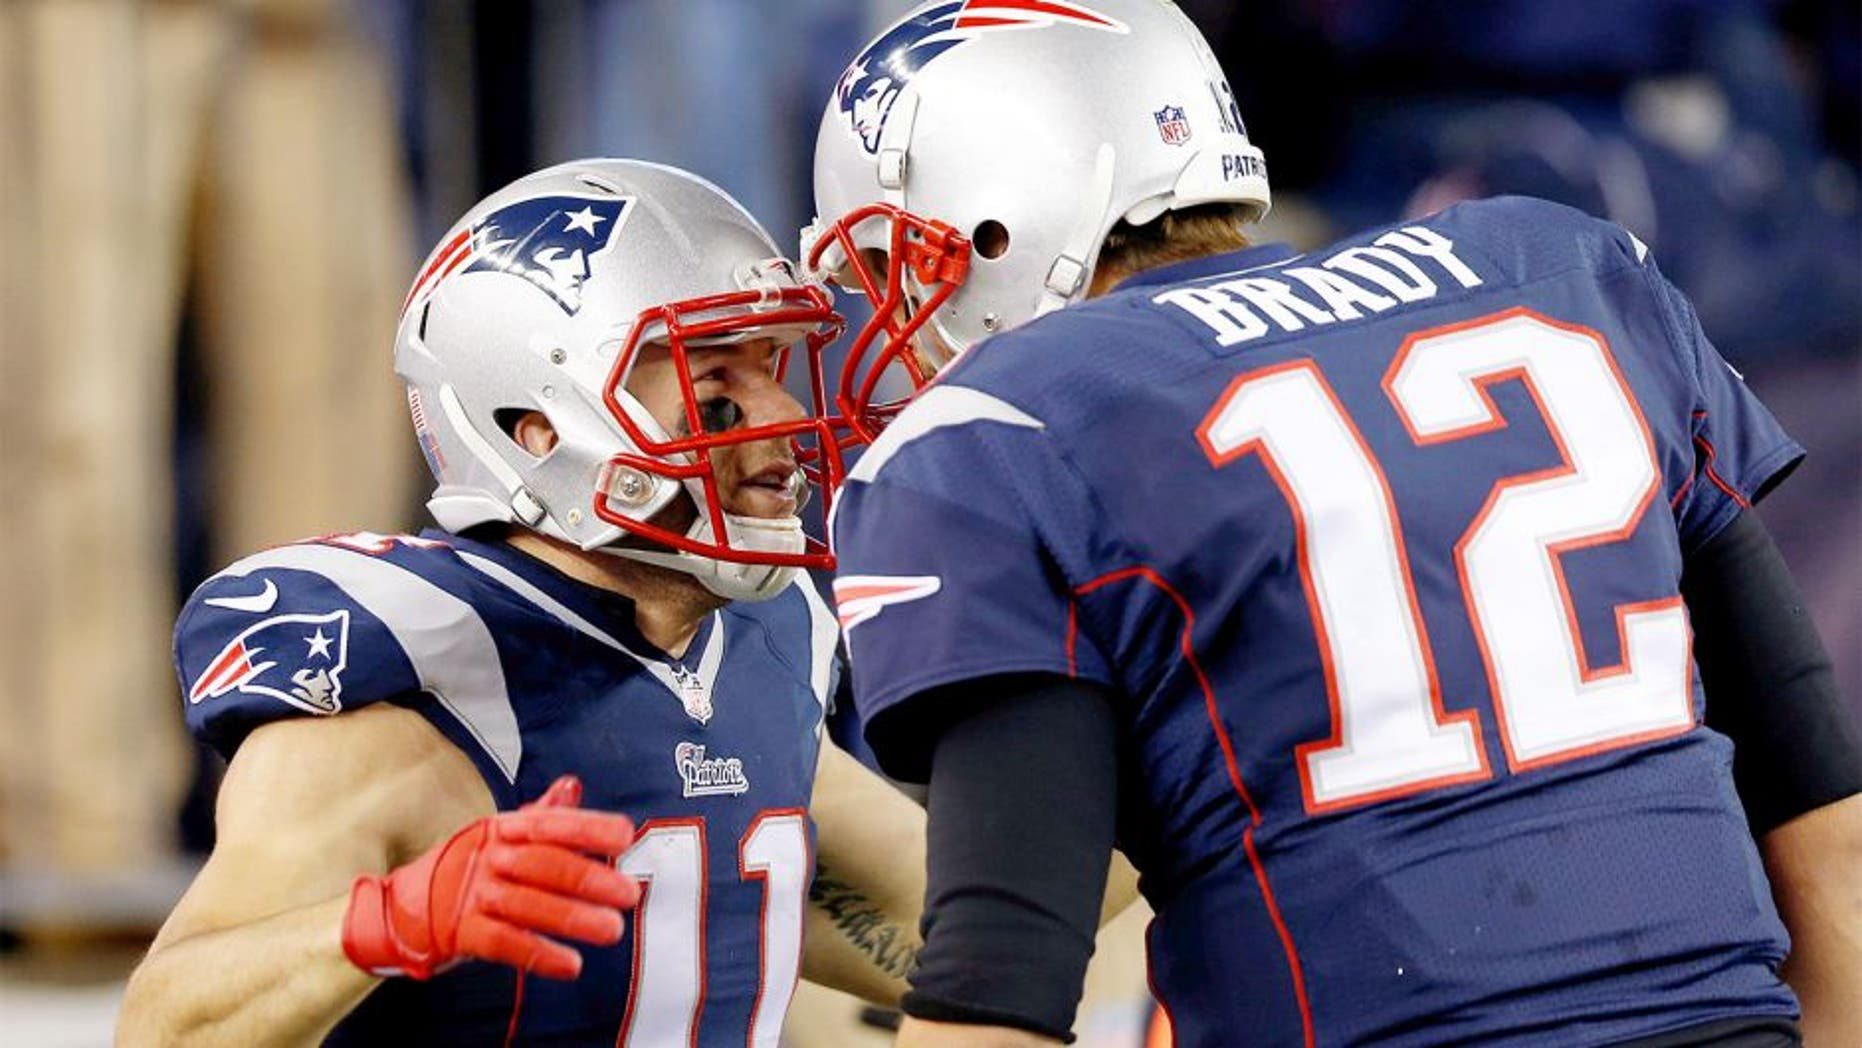 Nov 2, 2014; Foxborough, MA, USA; New England Patriots quarterback Tom Brady (12) congratulates special teams Julian Edelman (11) on scoring a touchdown on a run back return during the second quarter against the Denver Broncos at Gillette Stadium. Mandatory Credit: Greg M. Cooper-USA TODAY Sports